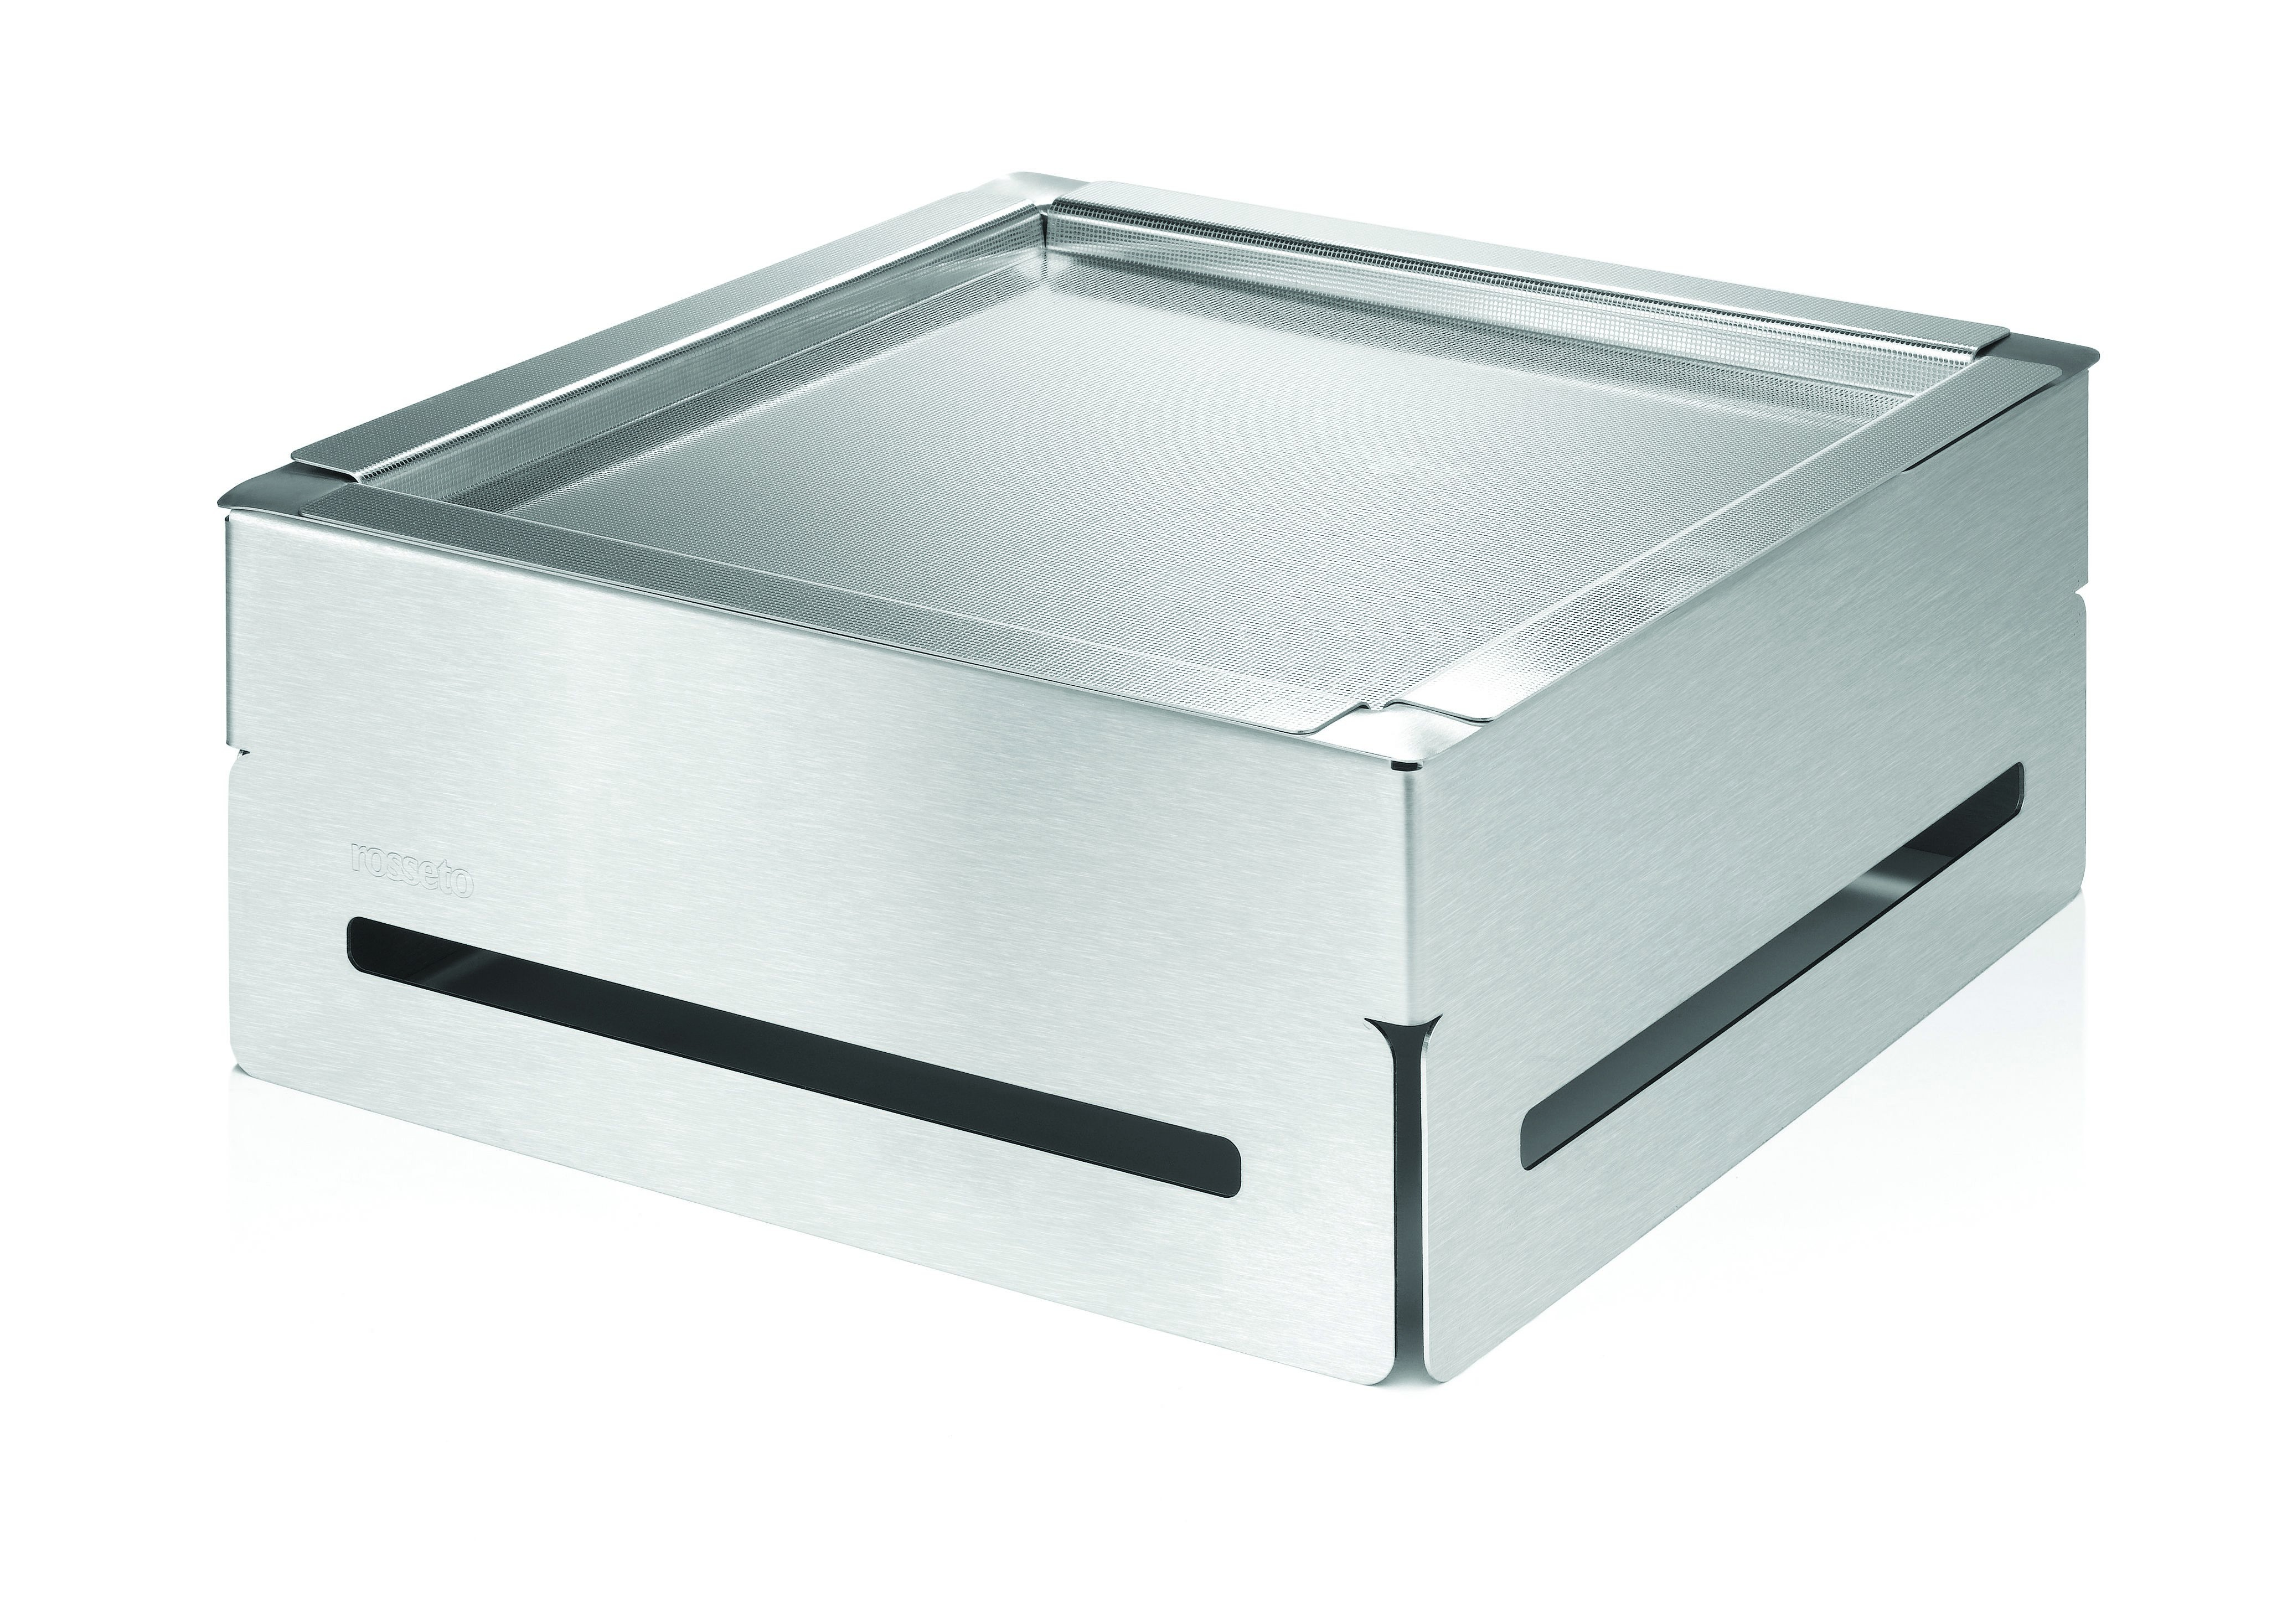 "Rosseto SM163 Square Stainless Steel Cooler Buffet Set With Tray & Insert 14.25"" x 14.25"" x 6.5""H"